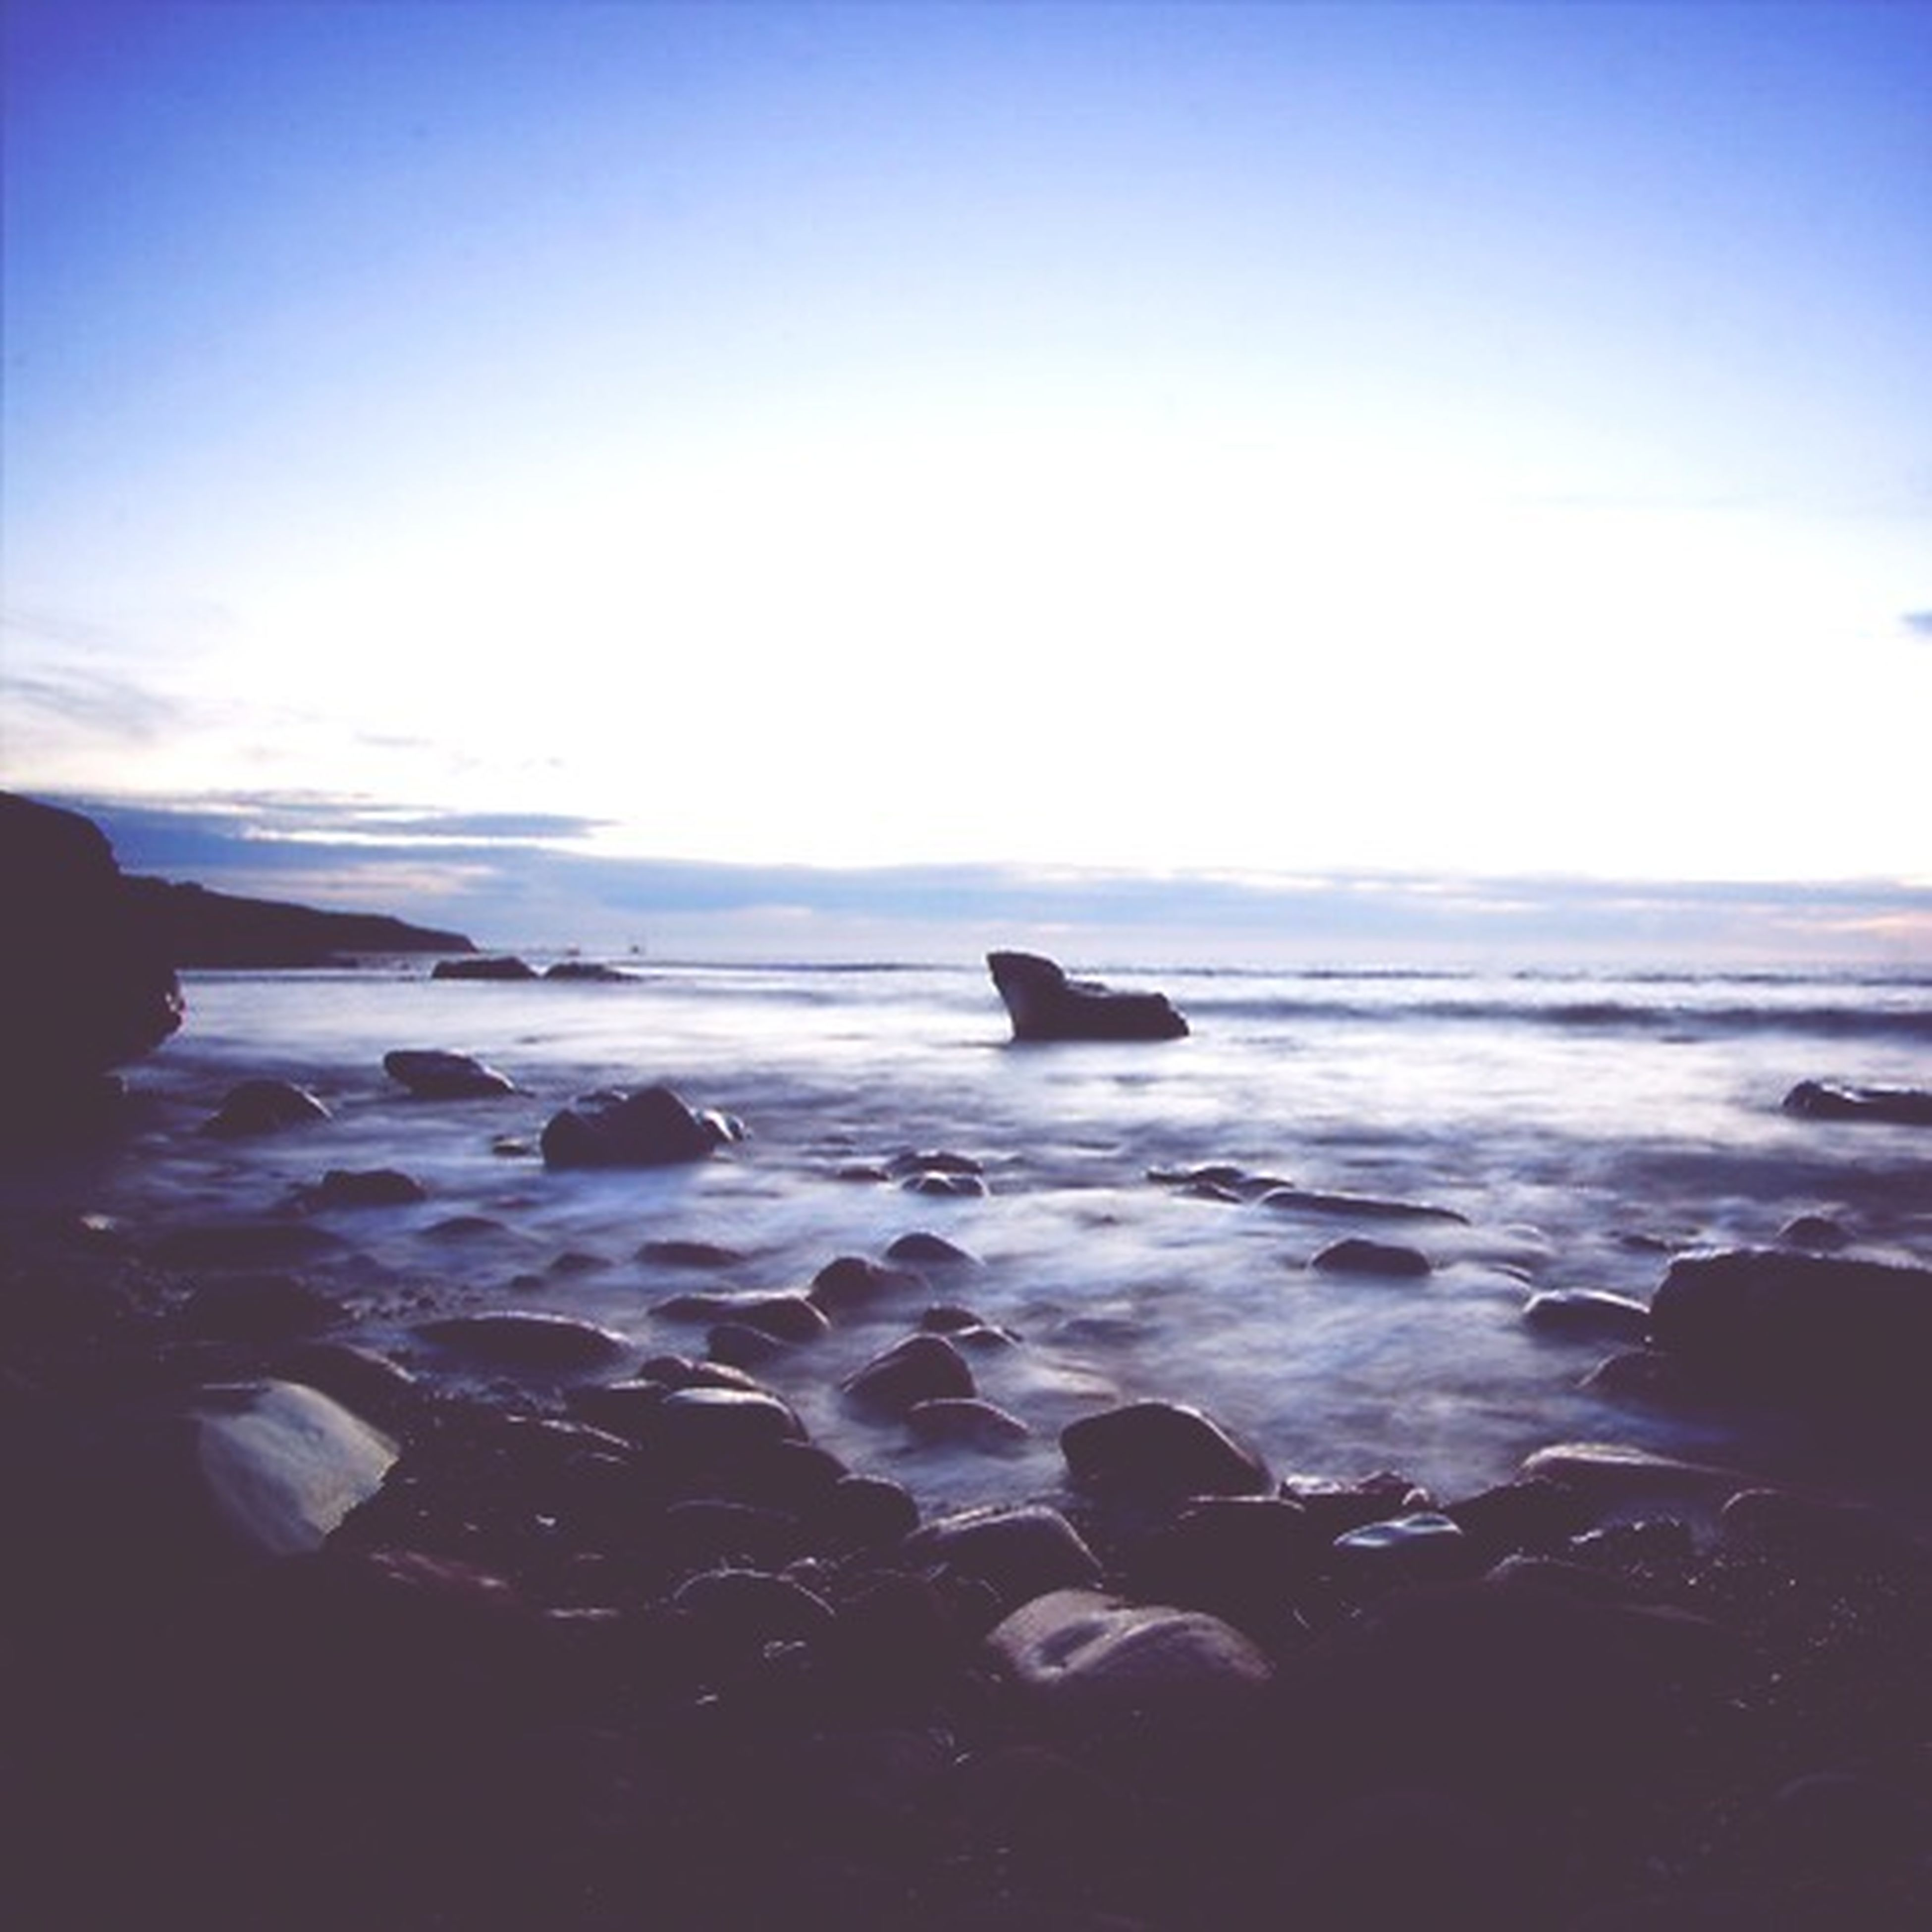 sea, water, horizon over water, blue, scenics, tranquil scene, tranquility, beauty in nature, nature, copy space, clear sky, sky, bird, beach, animal themes, one animal, shore, wildlife, idyllic, flying